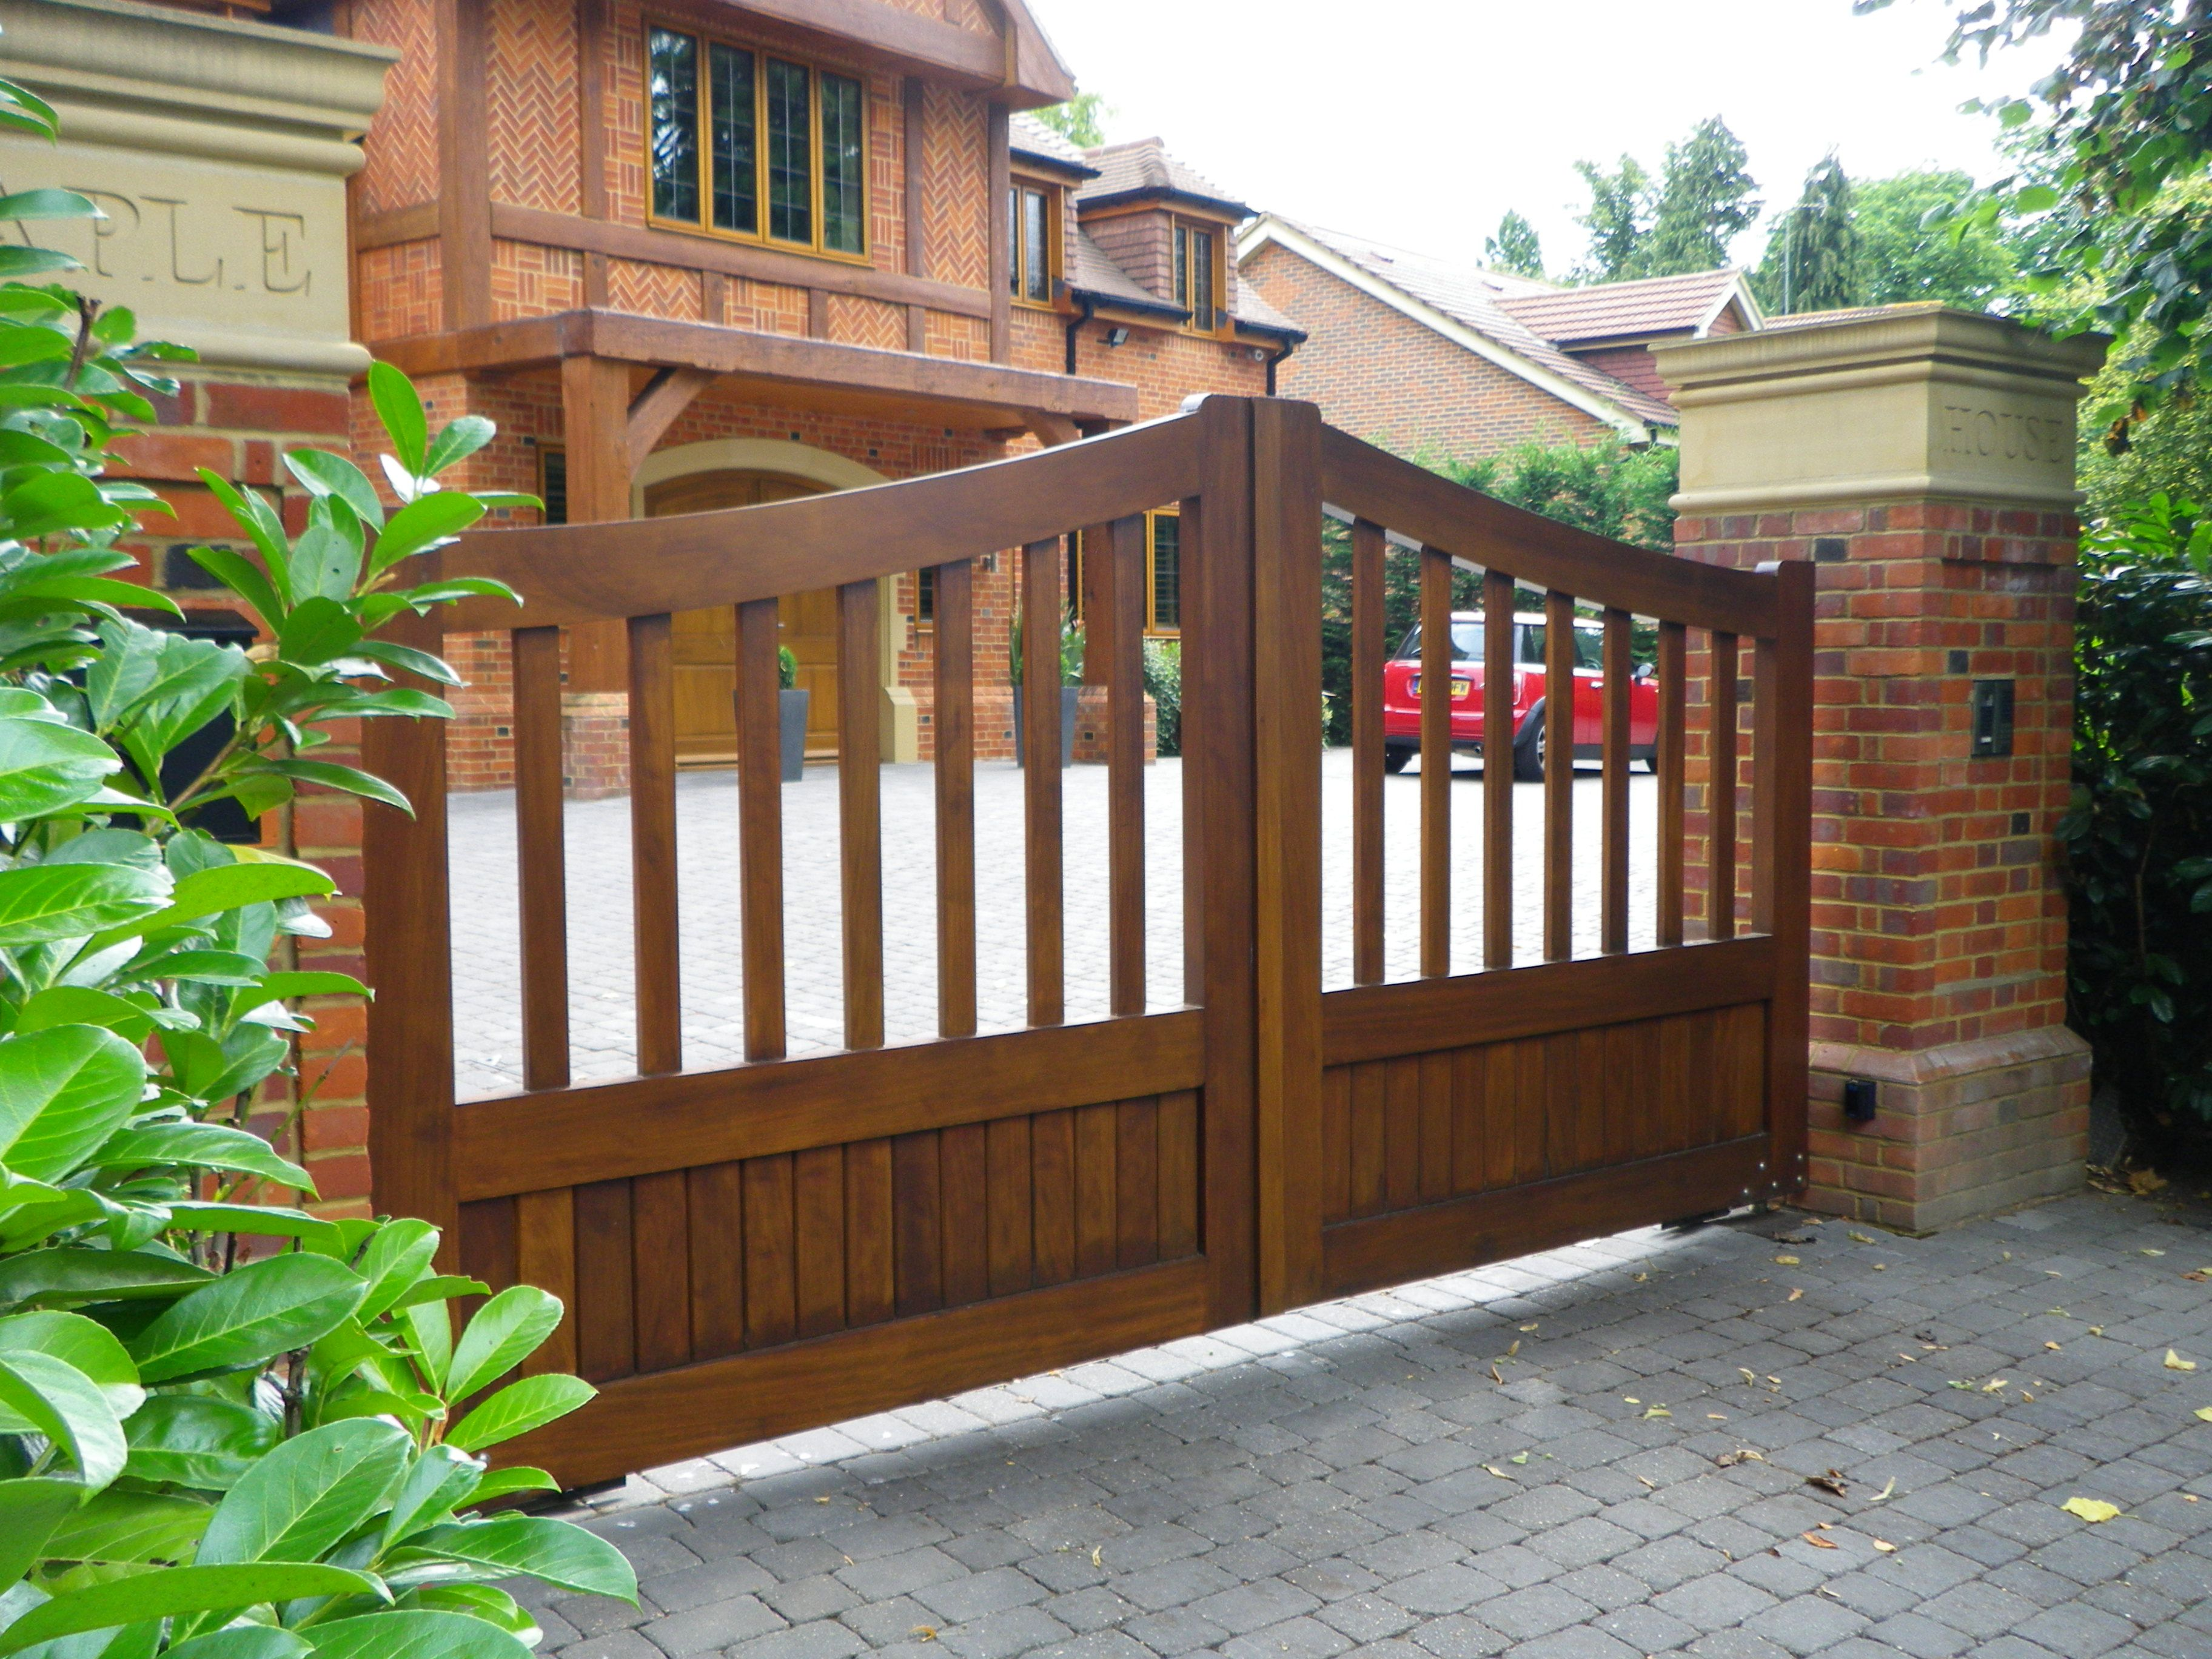 electric gates design driveway iron home security wrought modern